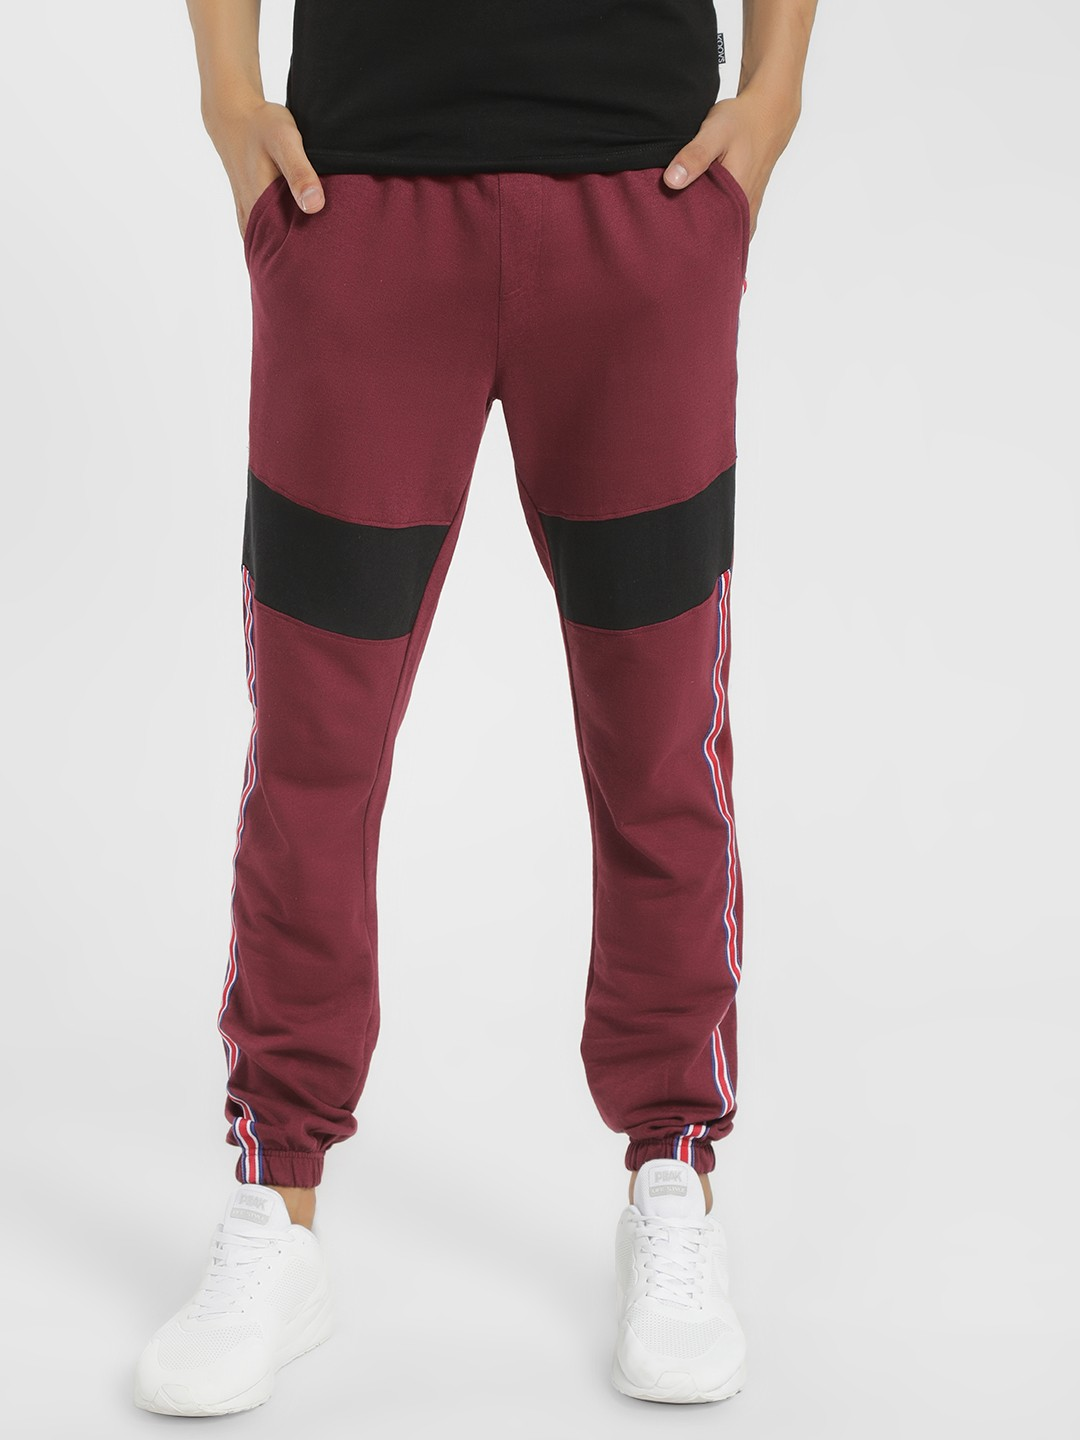 X.O.Y.O Red Cut & Sew Side Tape Joggers 1